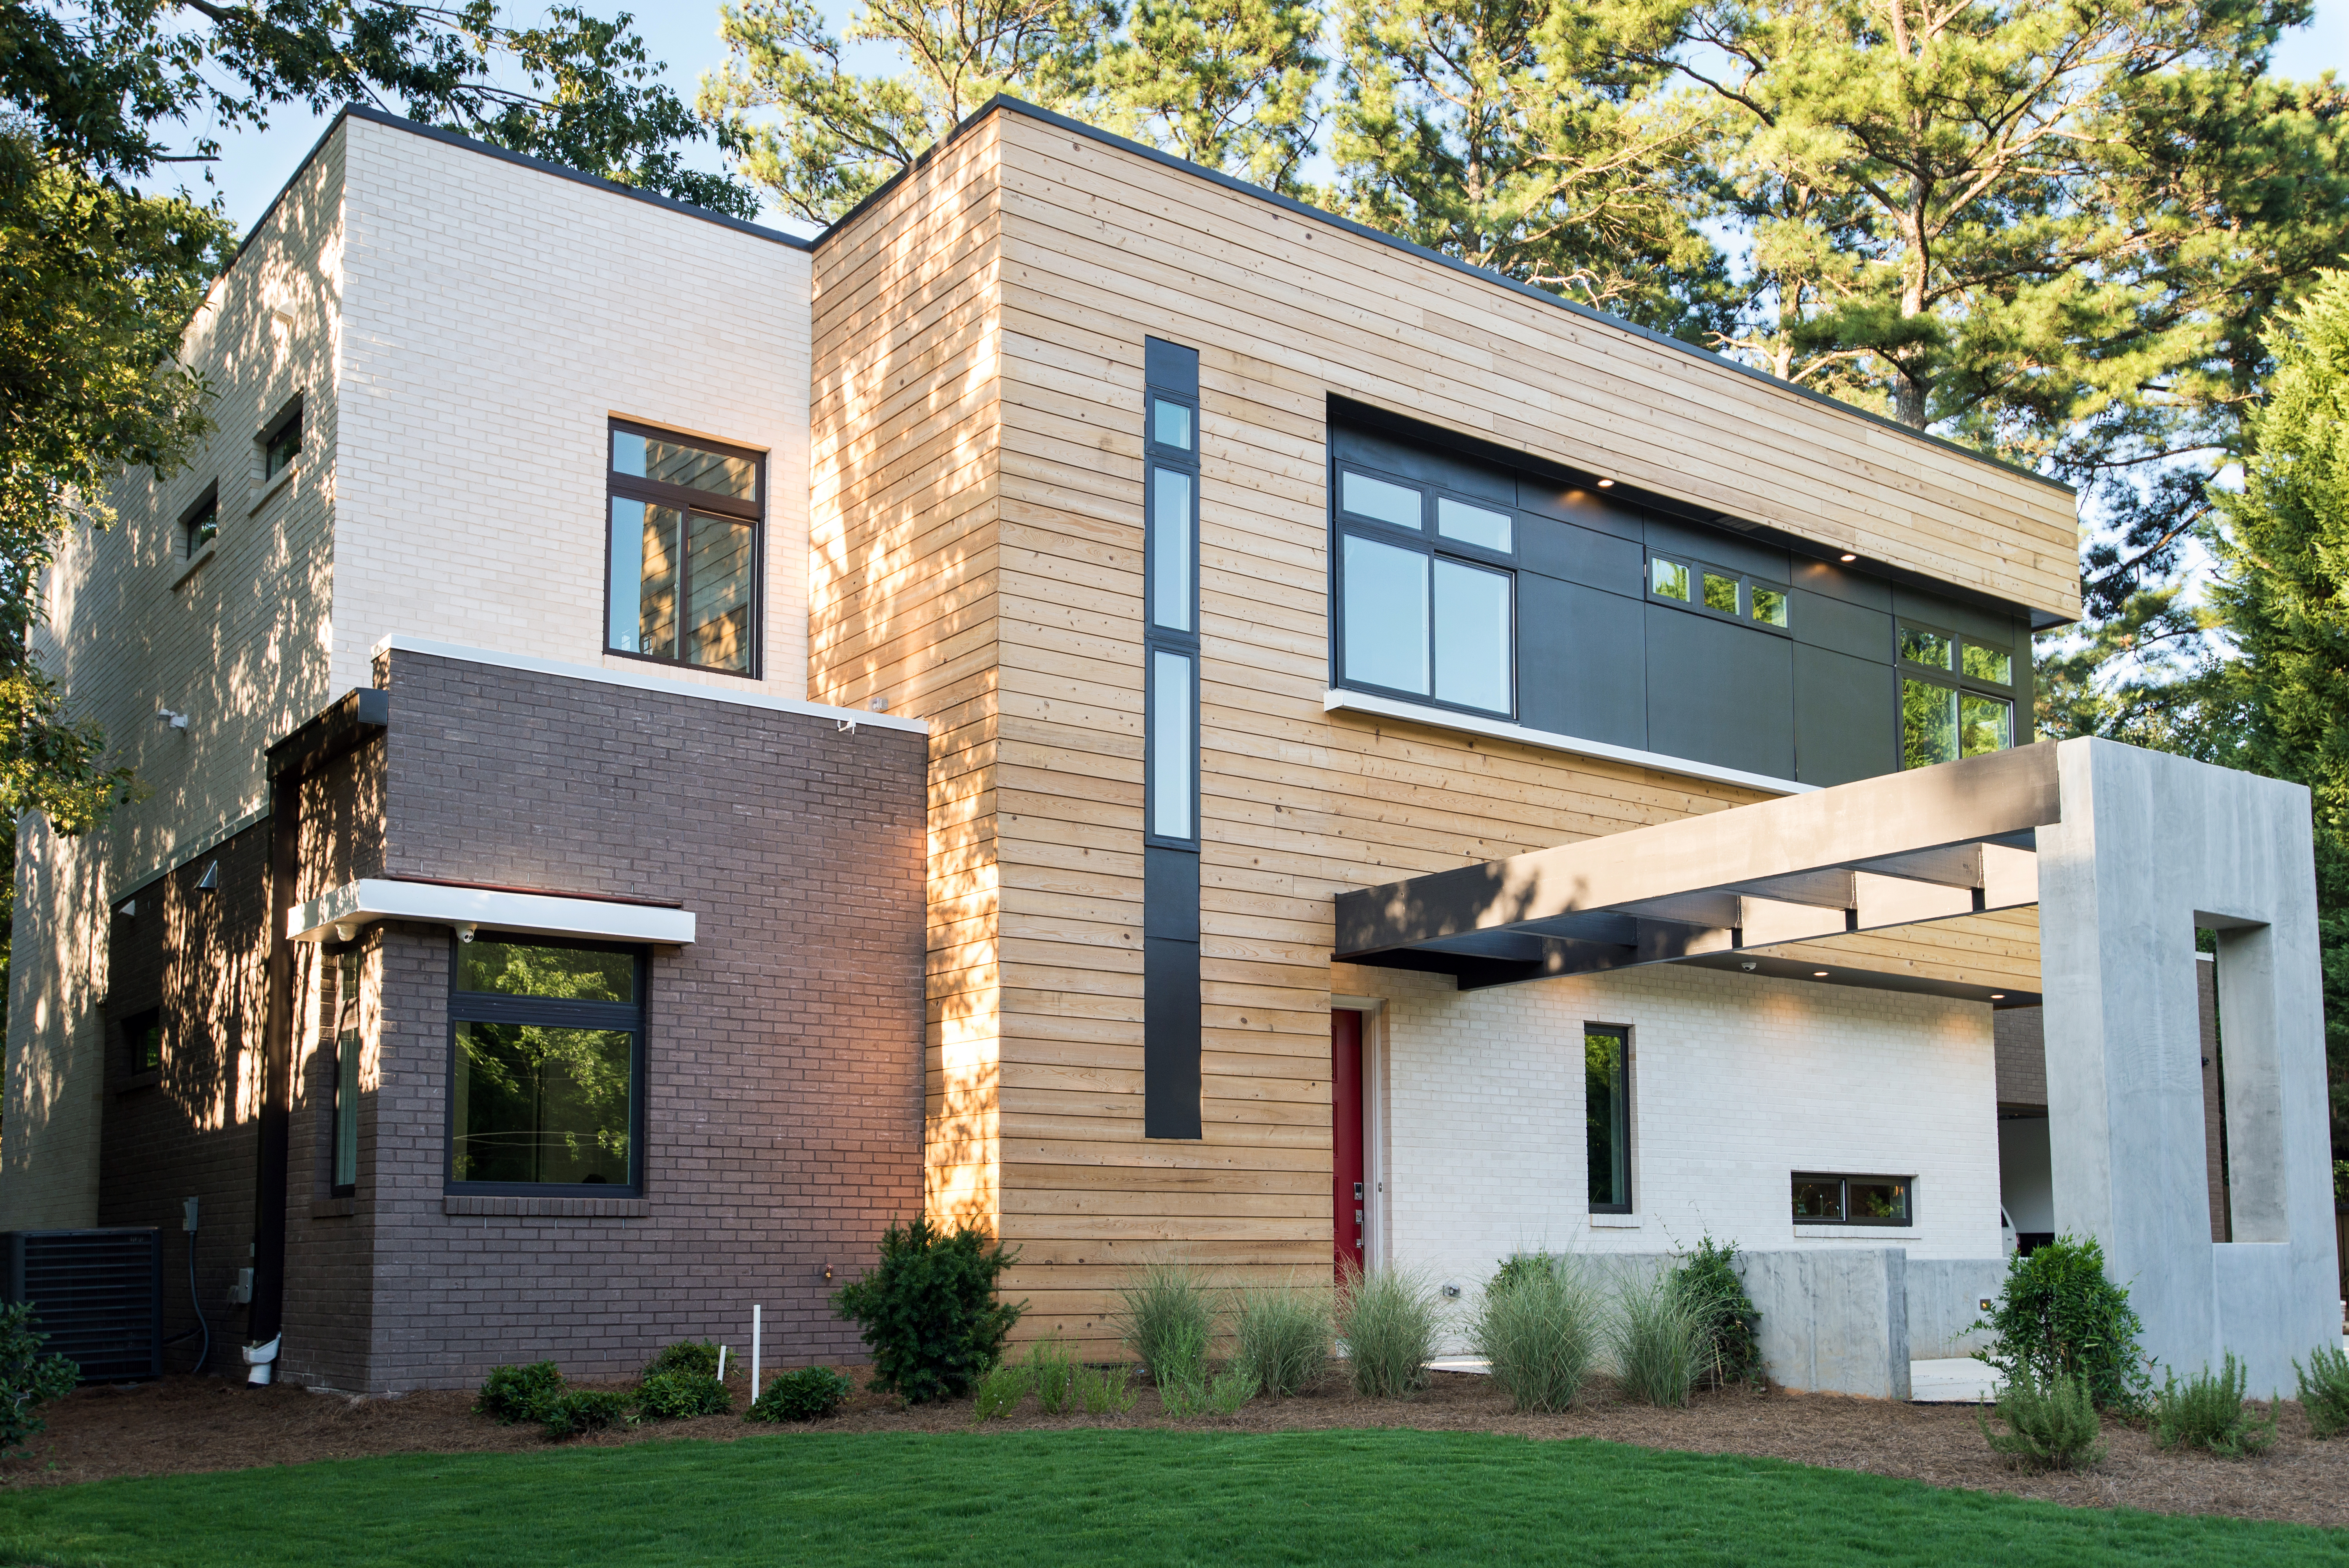 Modern Architecture Atlanta perfect modern architecture atlanta a forthcoming compound on